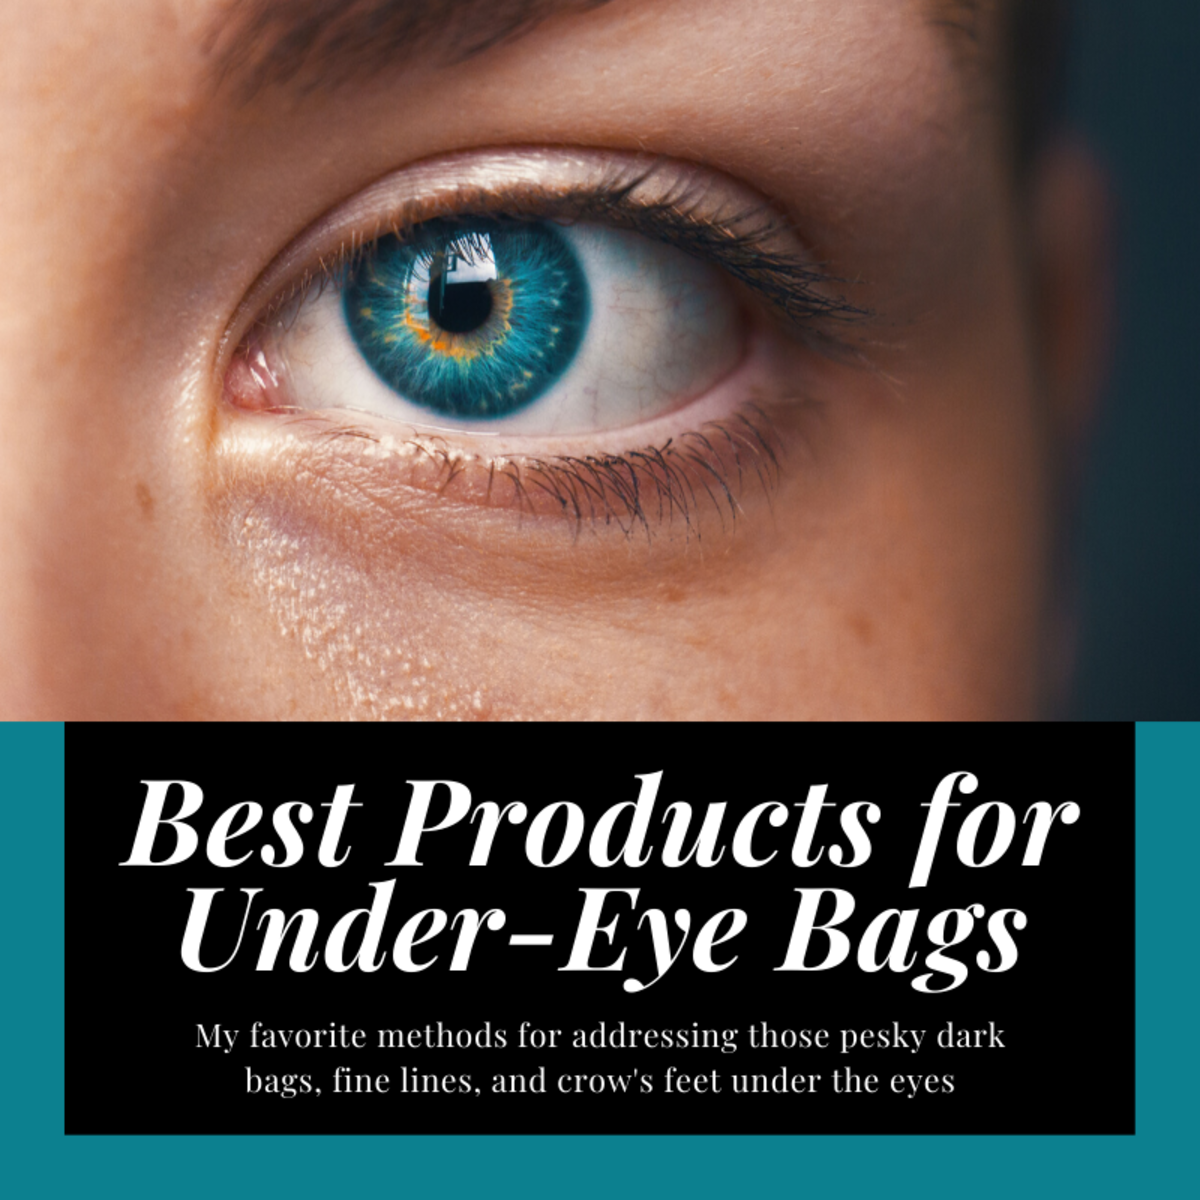 This article will share my two favorite products for reducing under-eye bags, fine lines, and crow's feet.